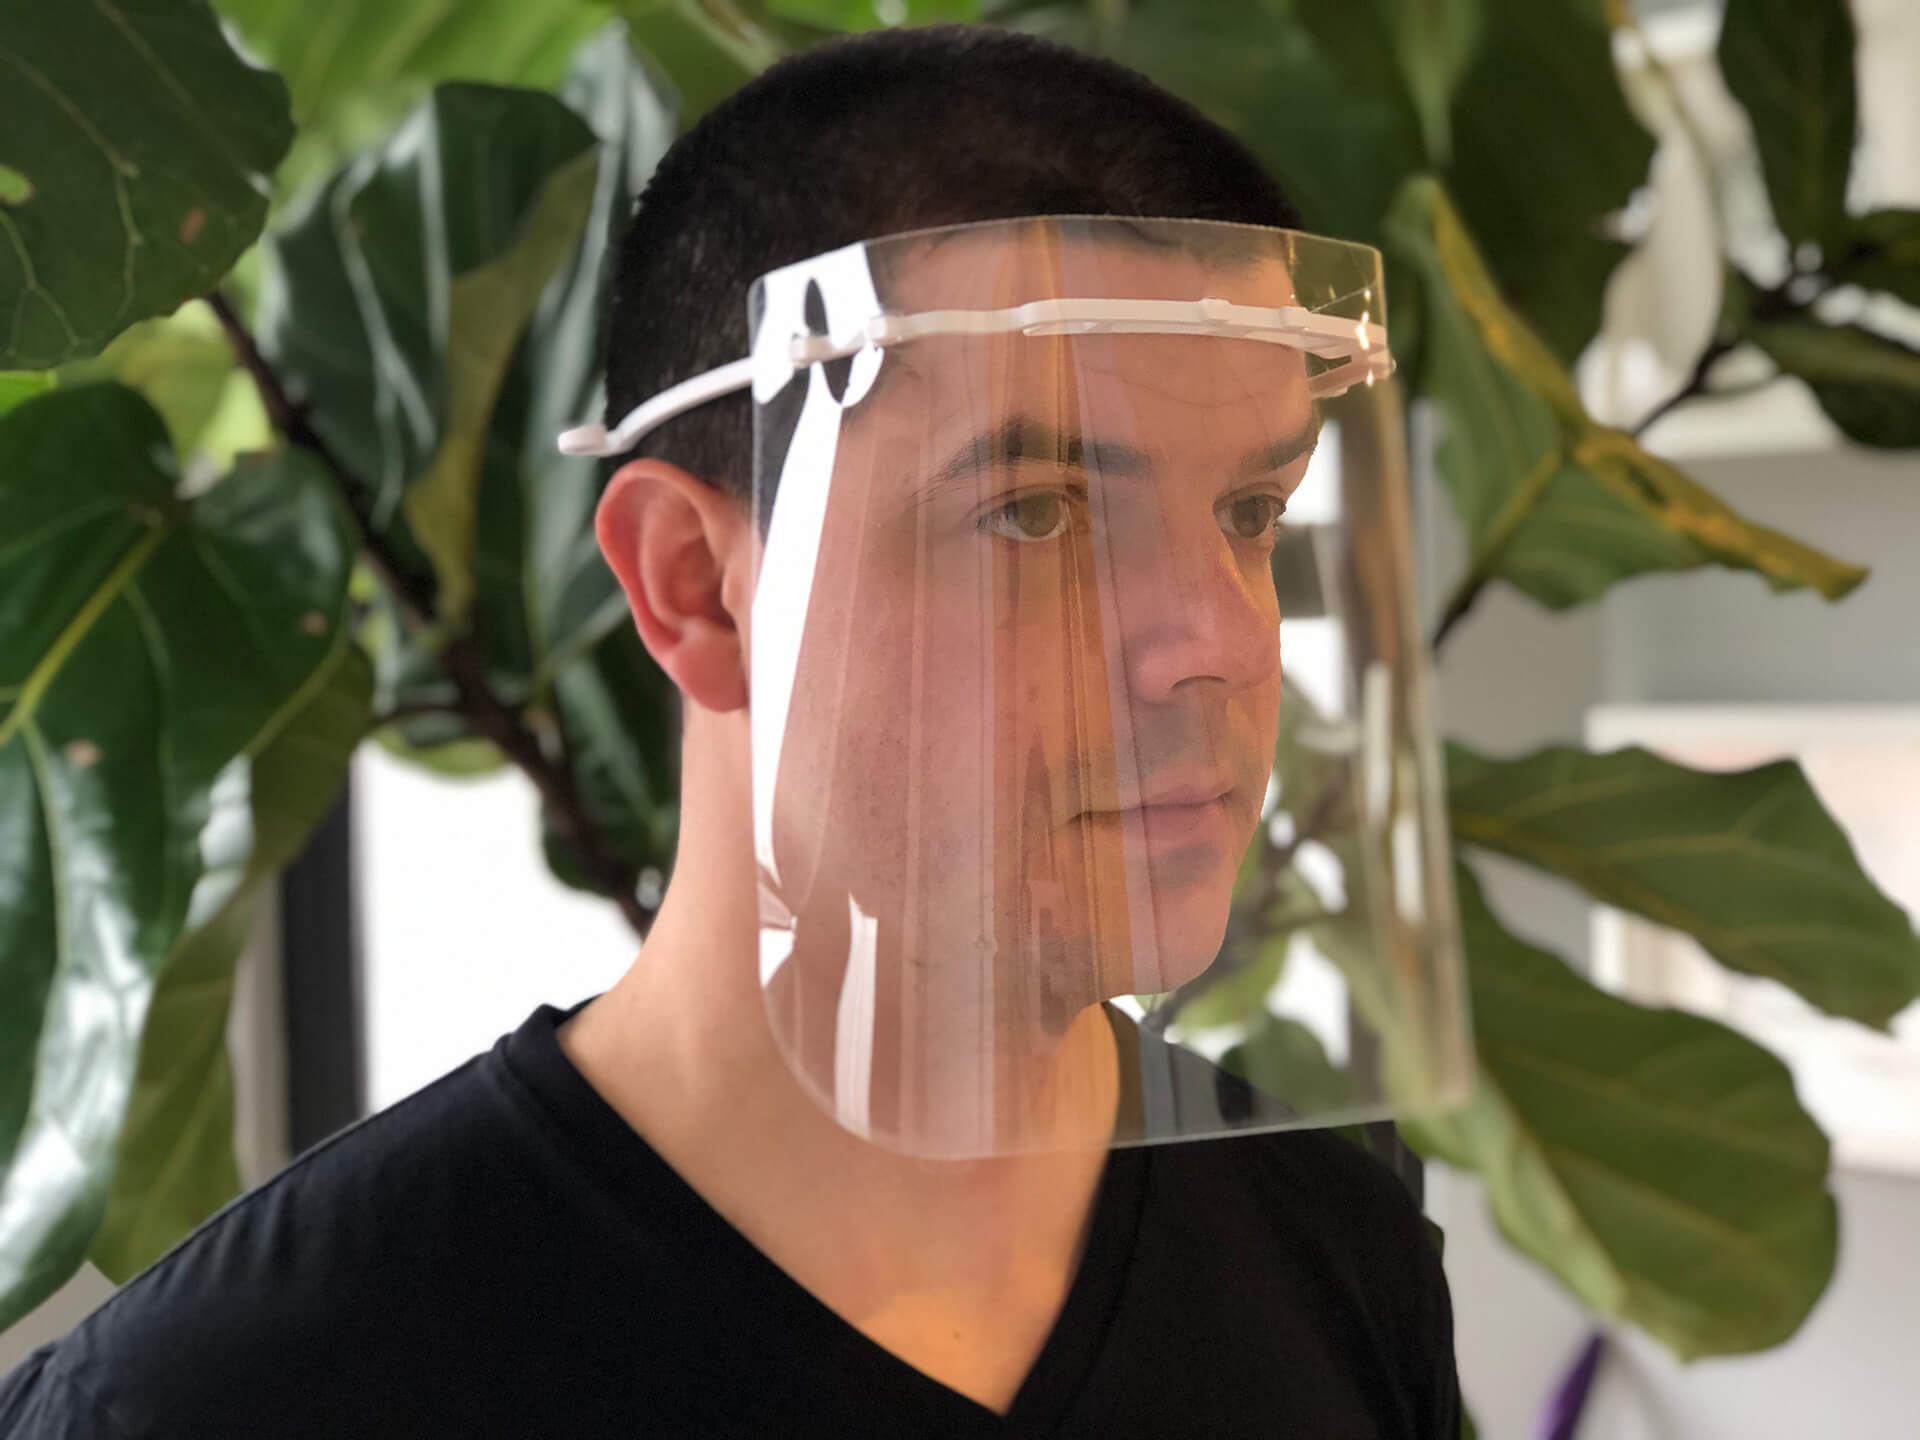 3D face shield printed in BIG's New York office | 3D face shield | BIG | STIRworld